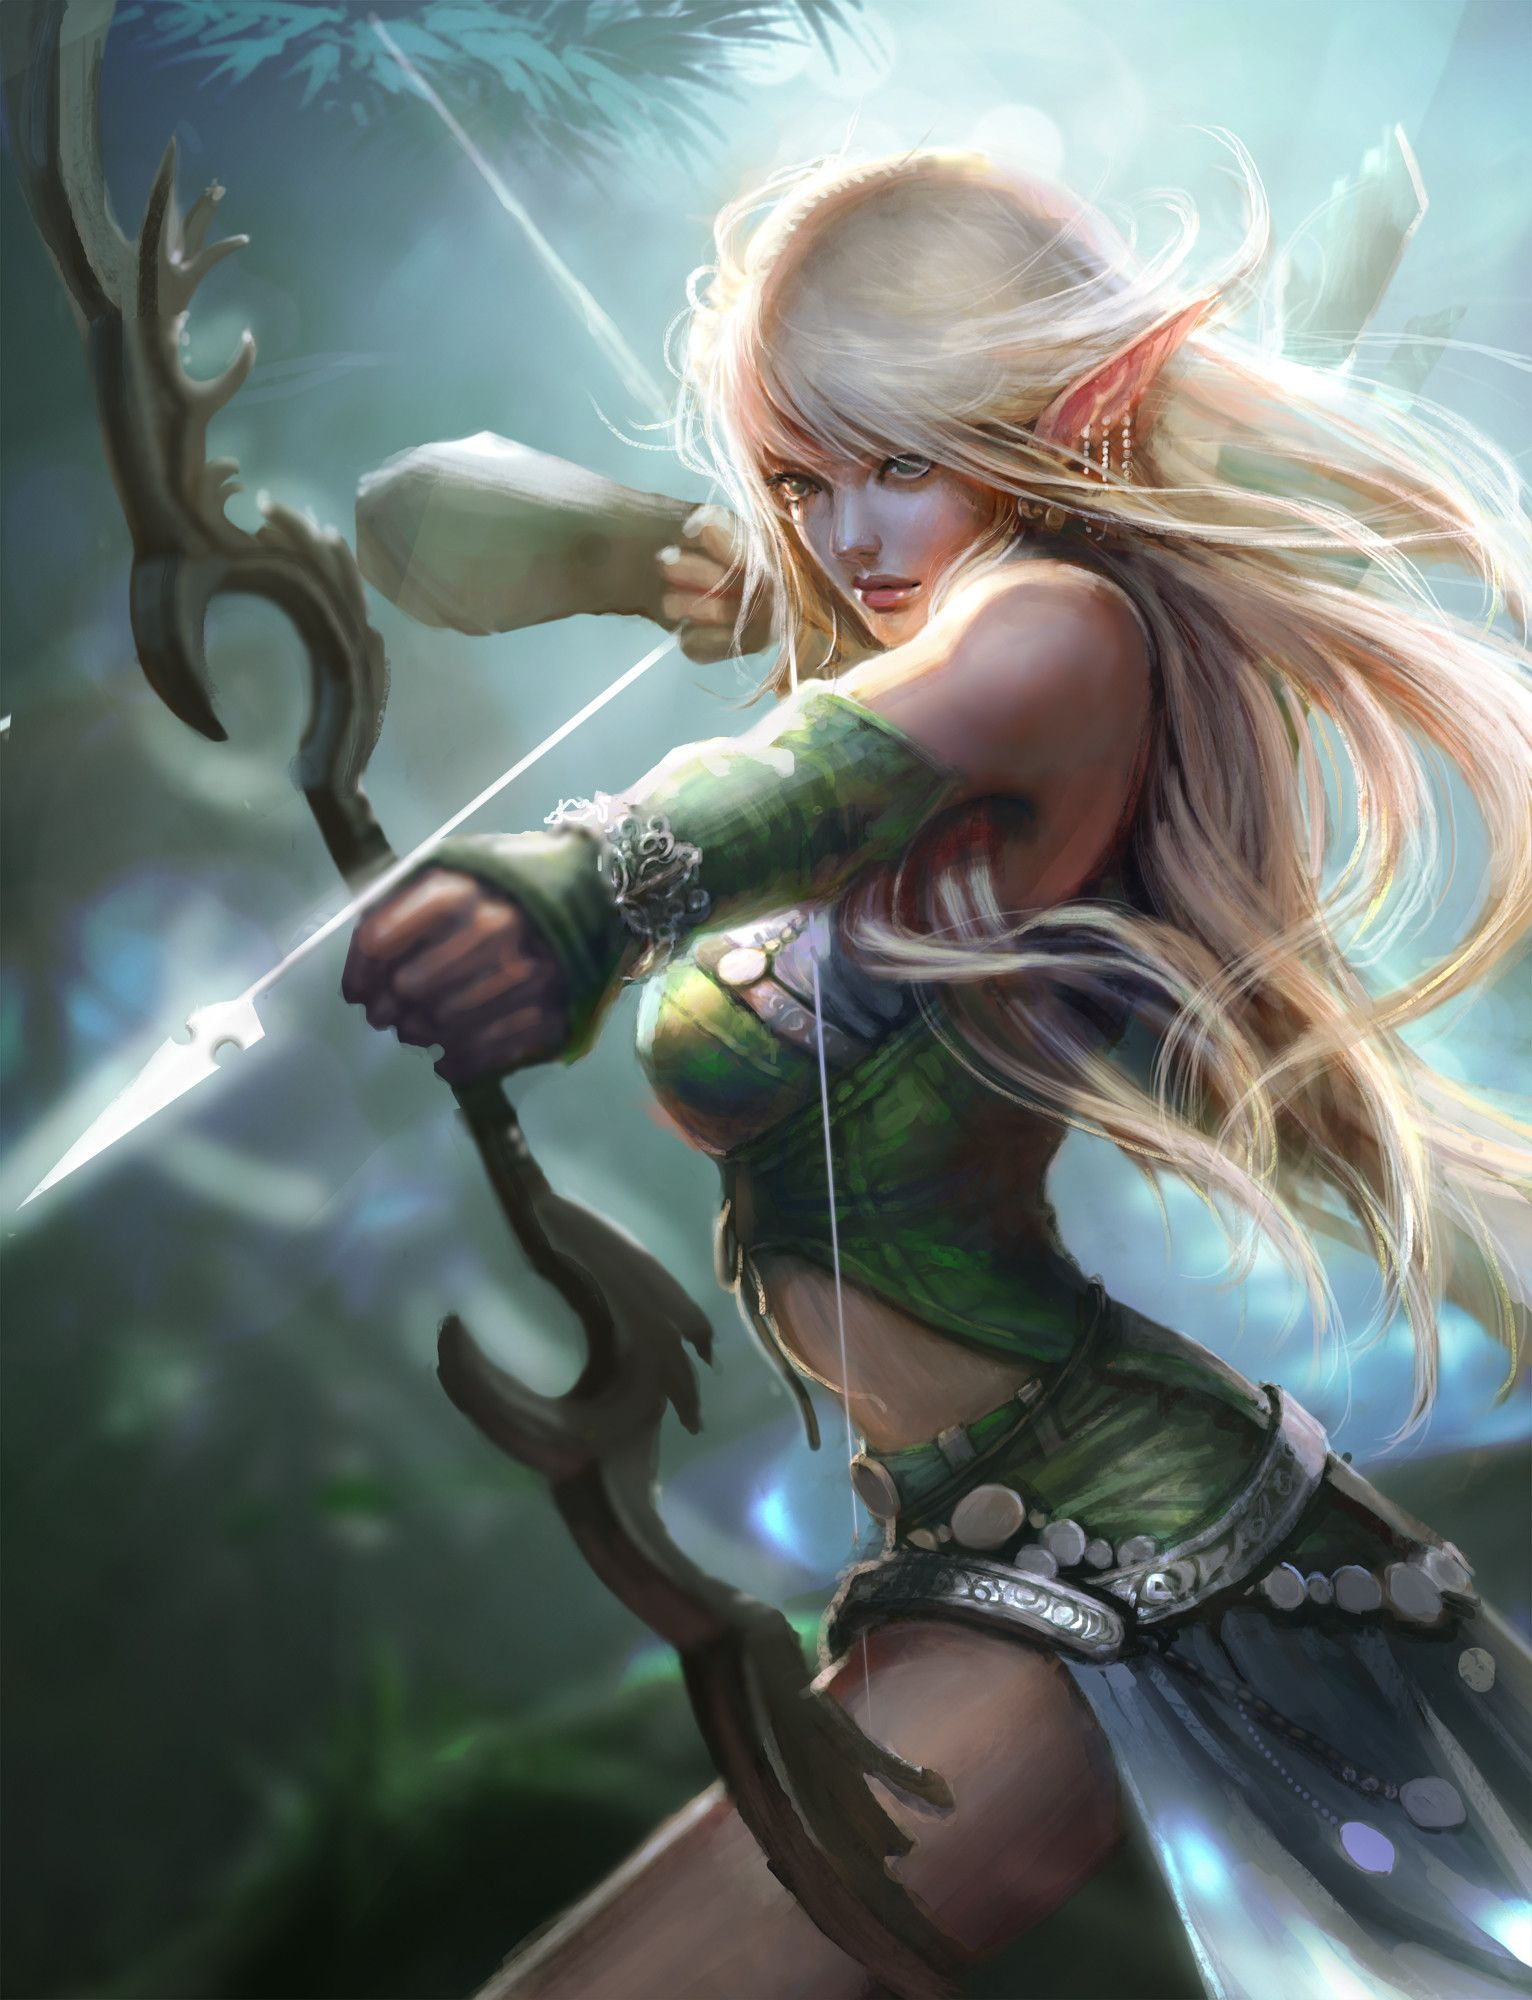 Apotelesma Eikonas Gia Elf Blonde Fighter Fantasy Art Women Fantasy Girl Warrior Woman